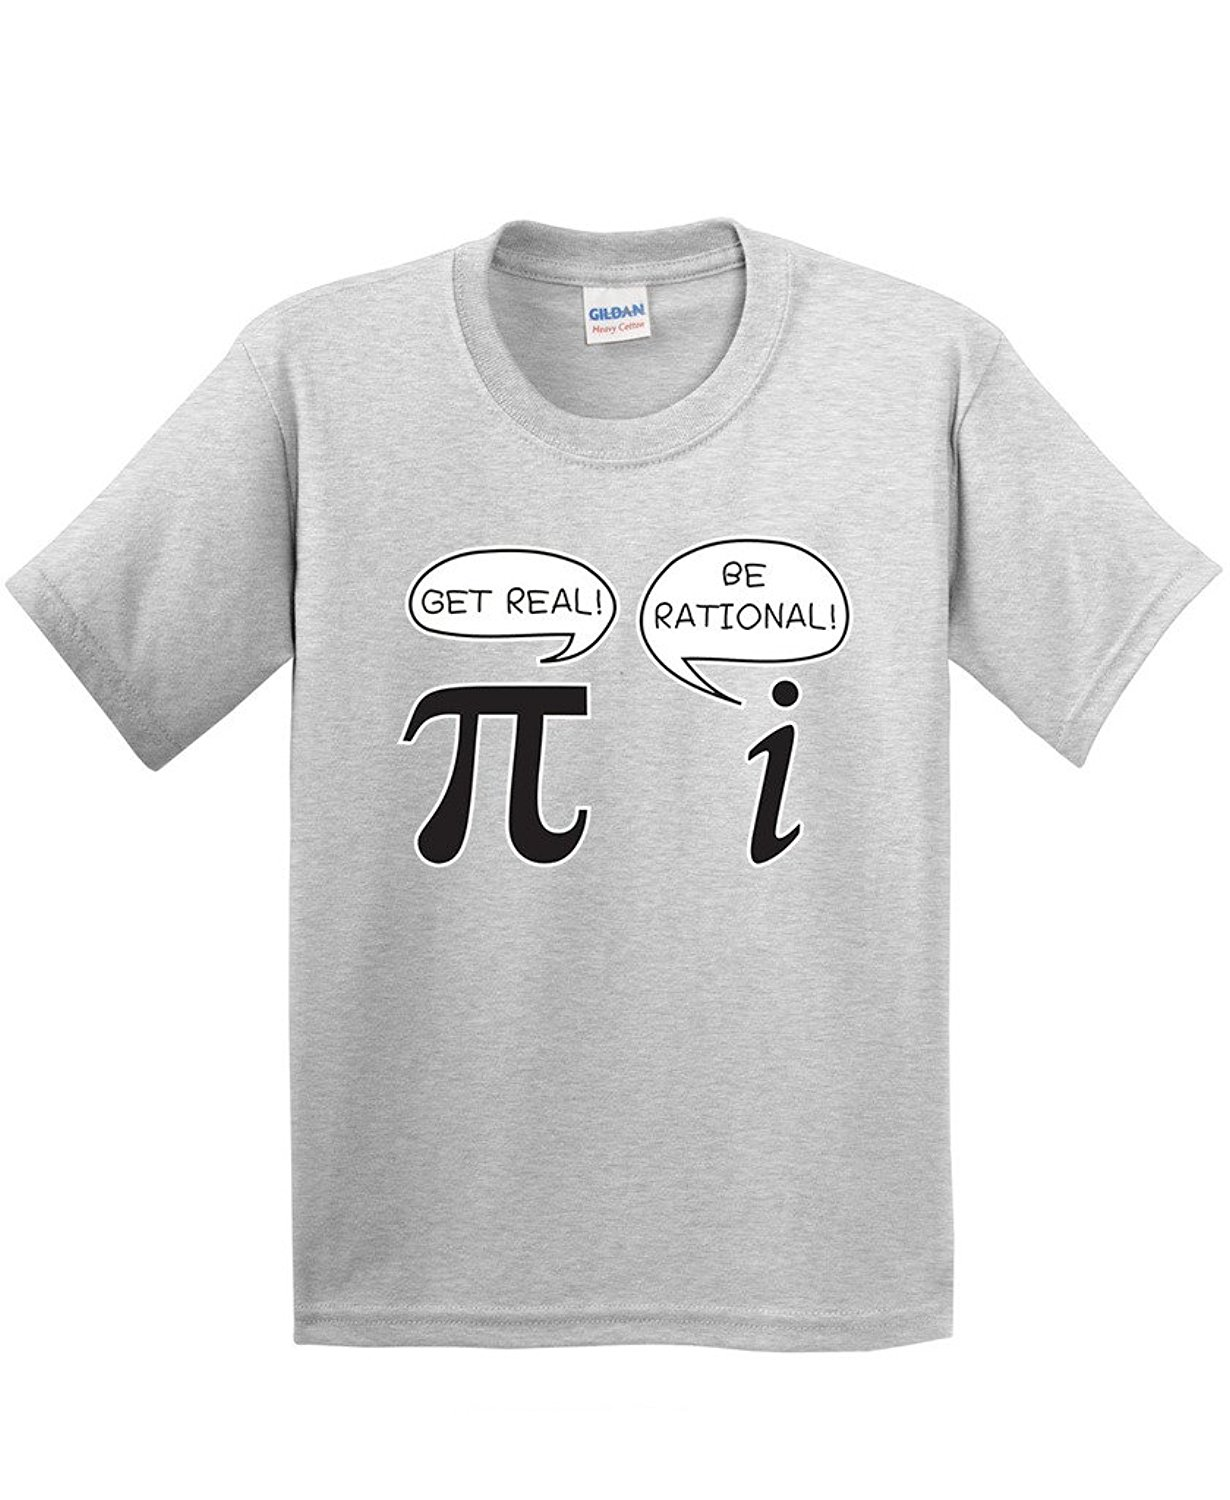 Personalised T Shirts MenS Get Real Be Rational Pi Funny Math Geek Sarcastic Adult Novelty Funny T Shirt Short Sleeve T Shirts